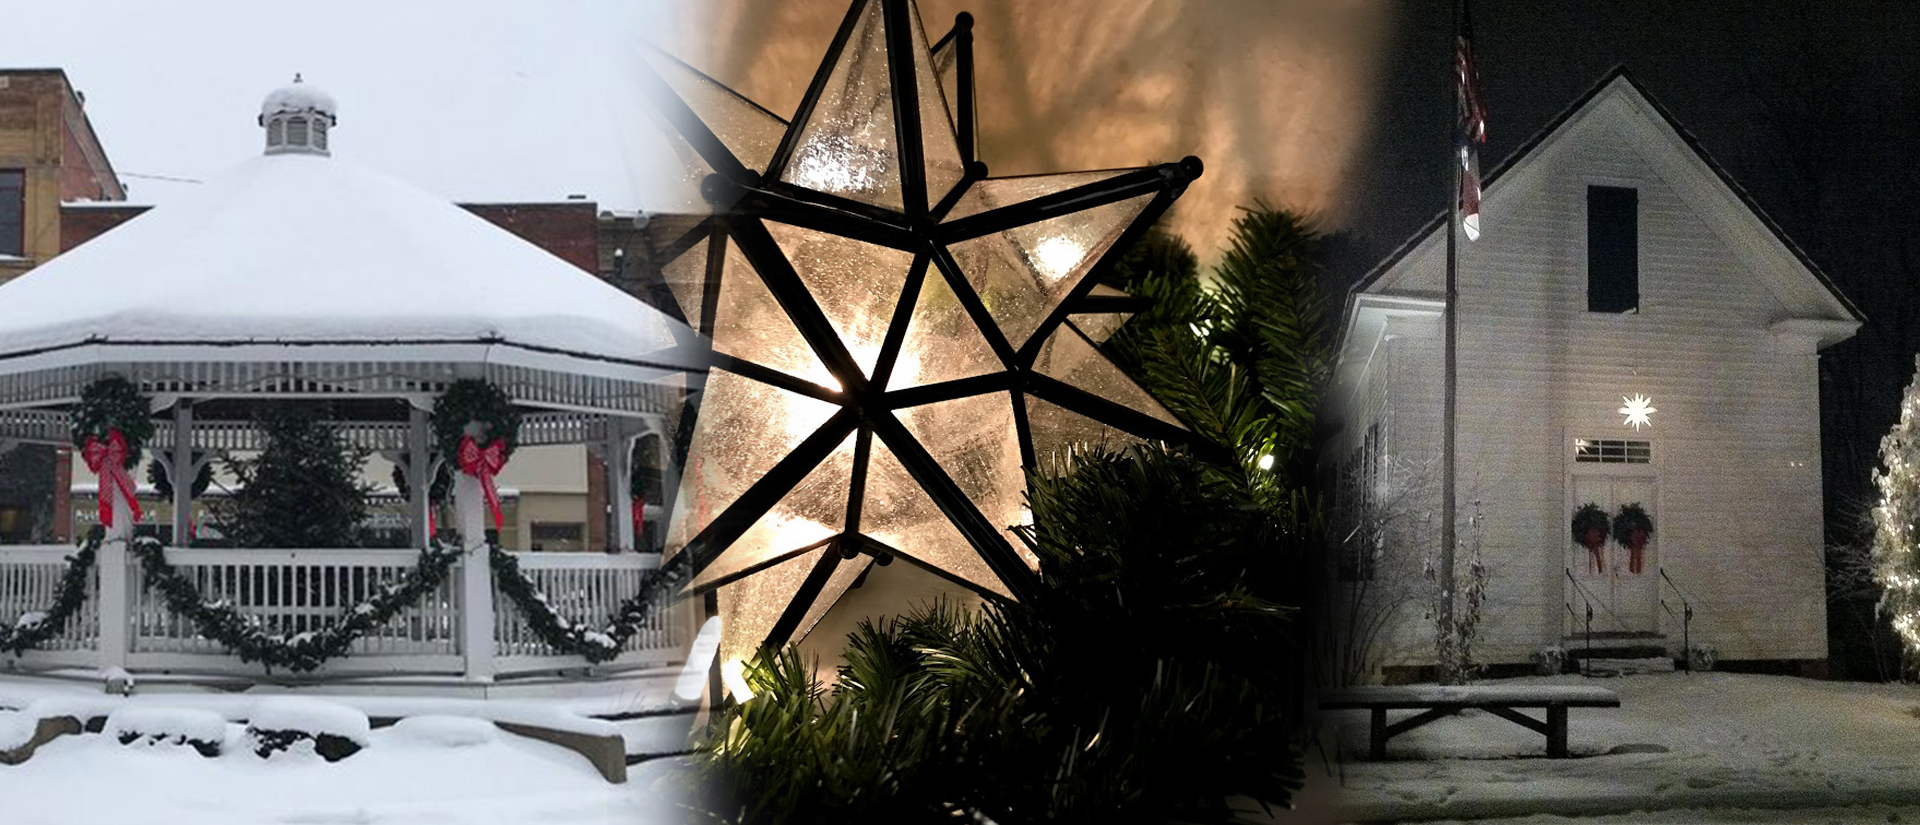 Winter_Gazebo_Light_BethaniaChapel